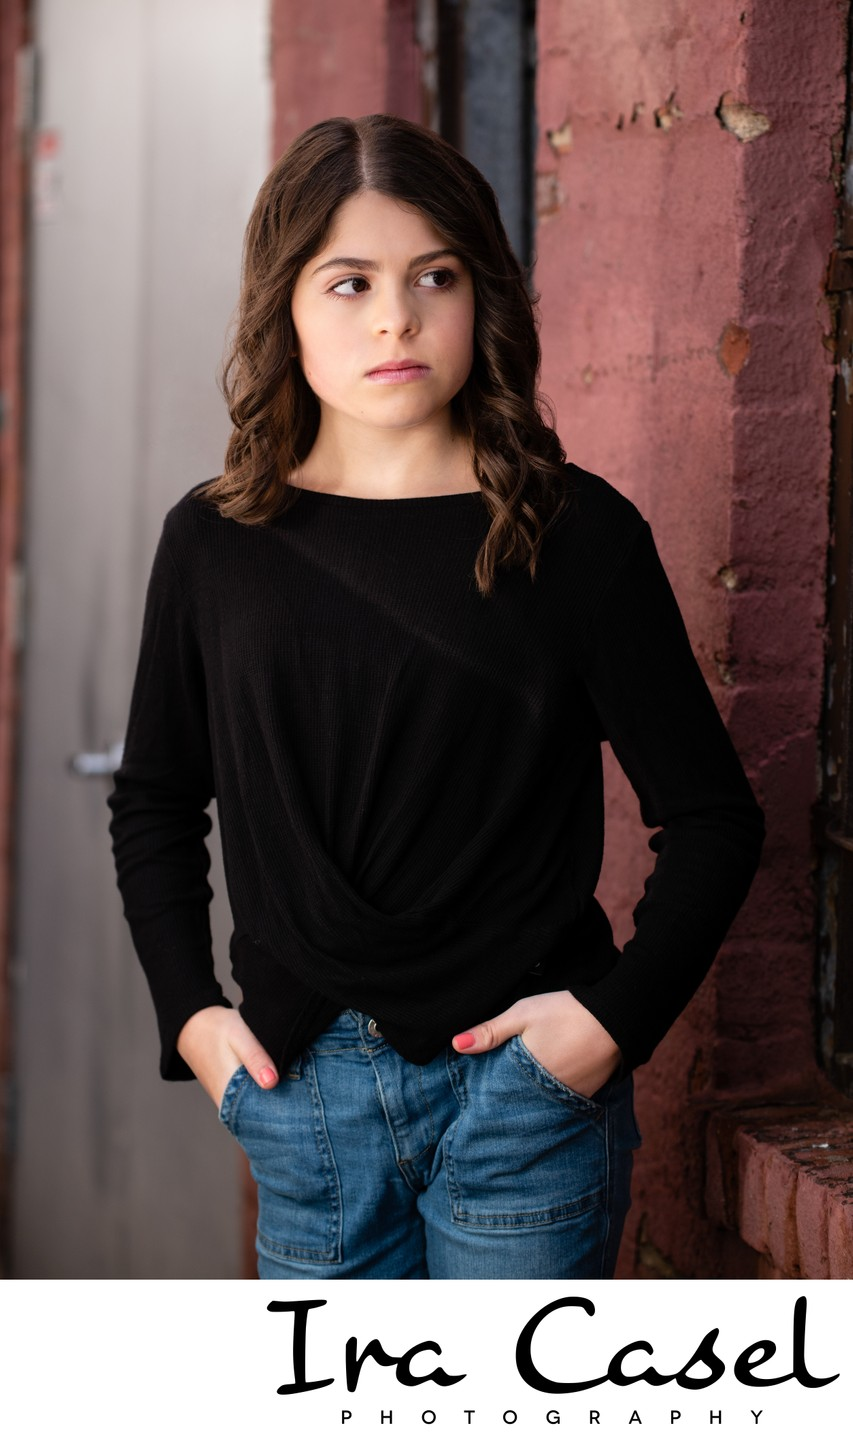 Pre-Bat Mitzvah Portrait Shoot: NYC